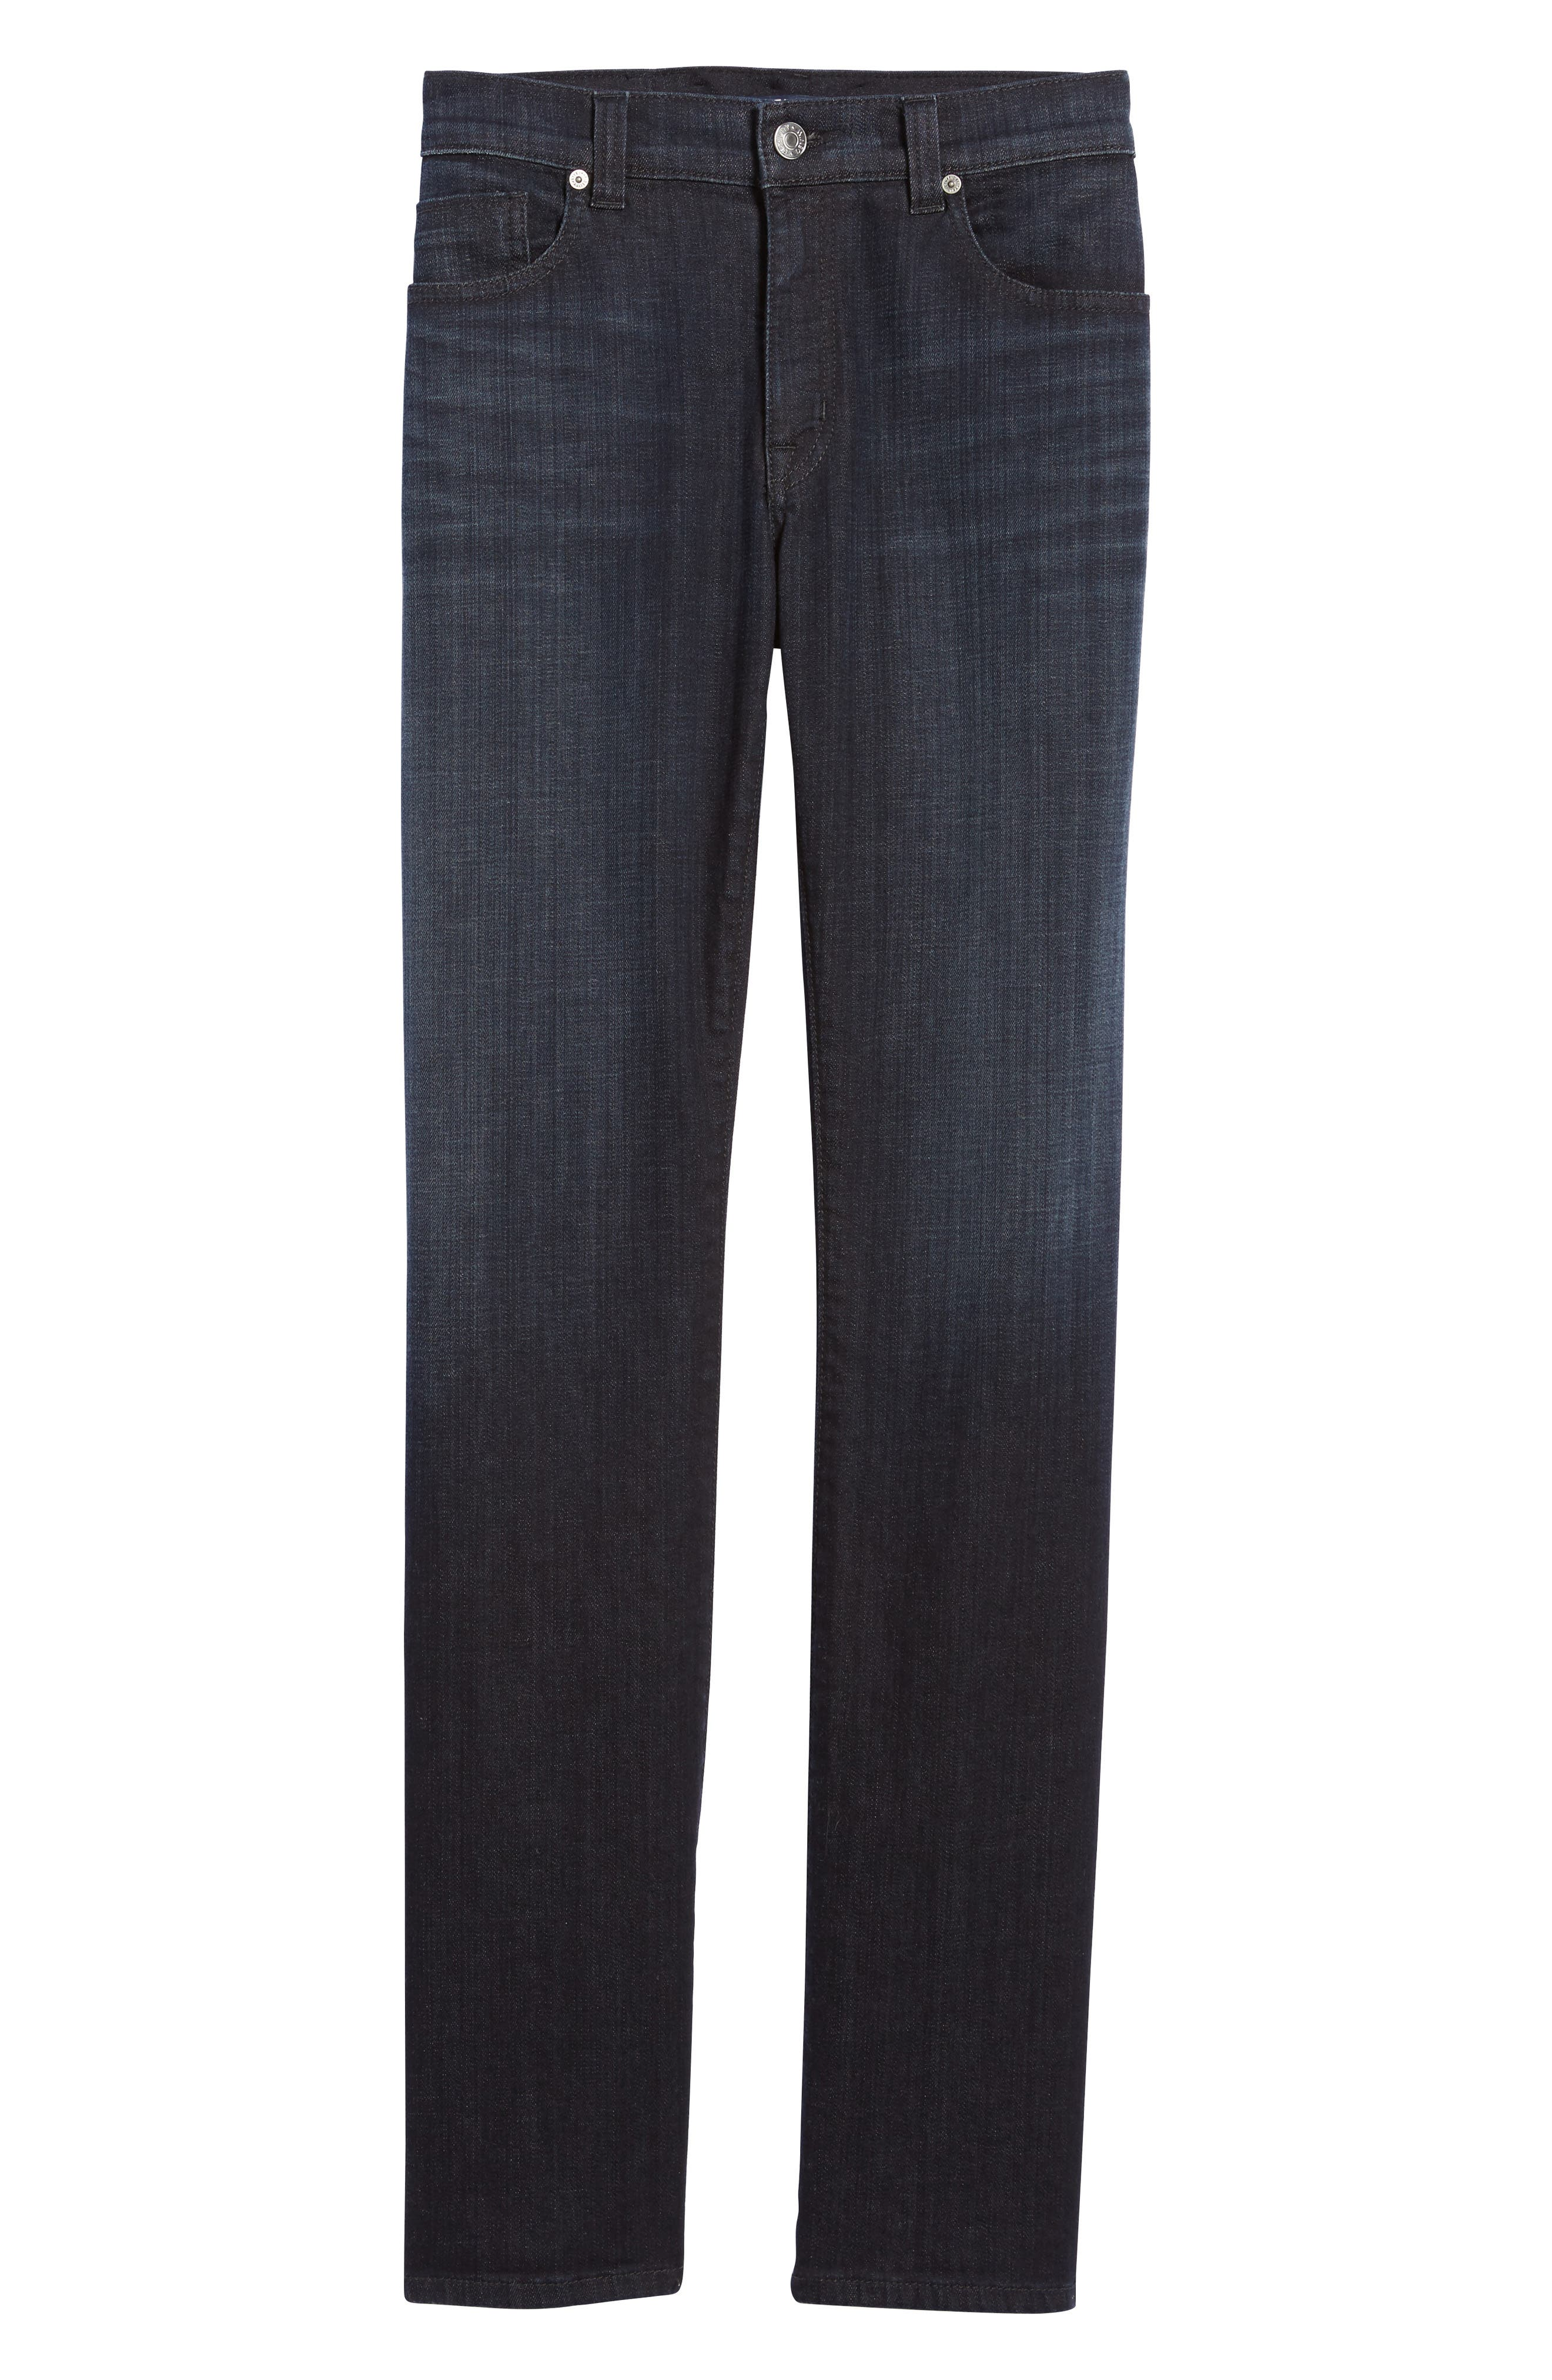 5011 Relaxed Fit Jeans,                             Alternate thumbnail 7, color,                             Harvard